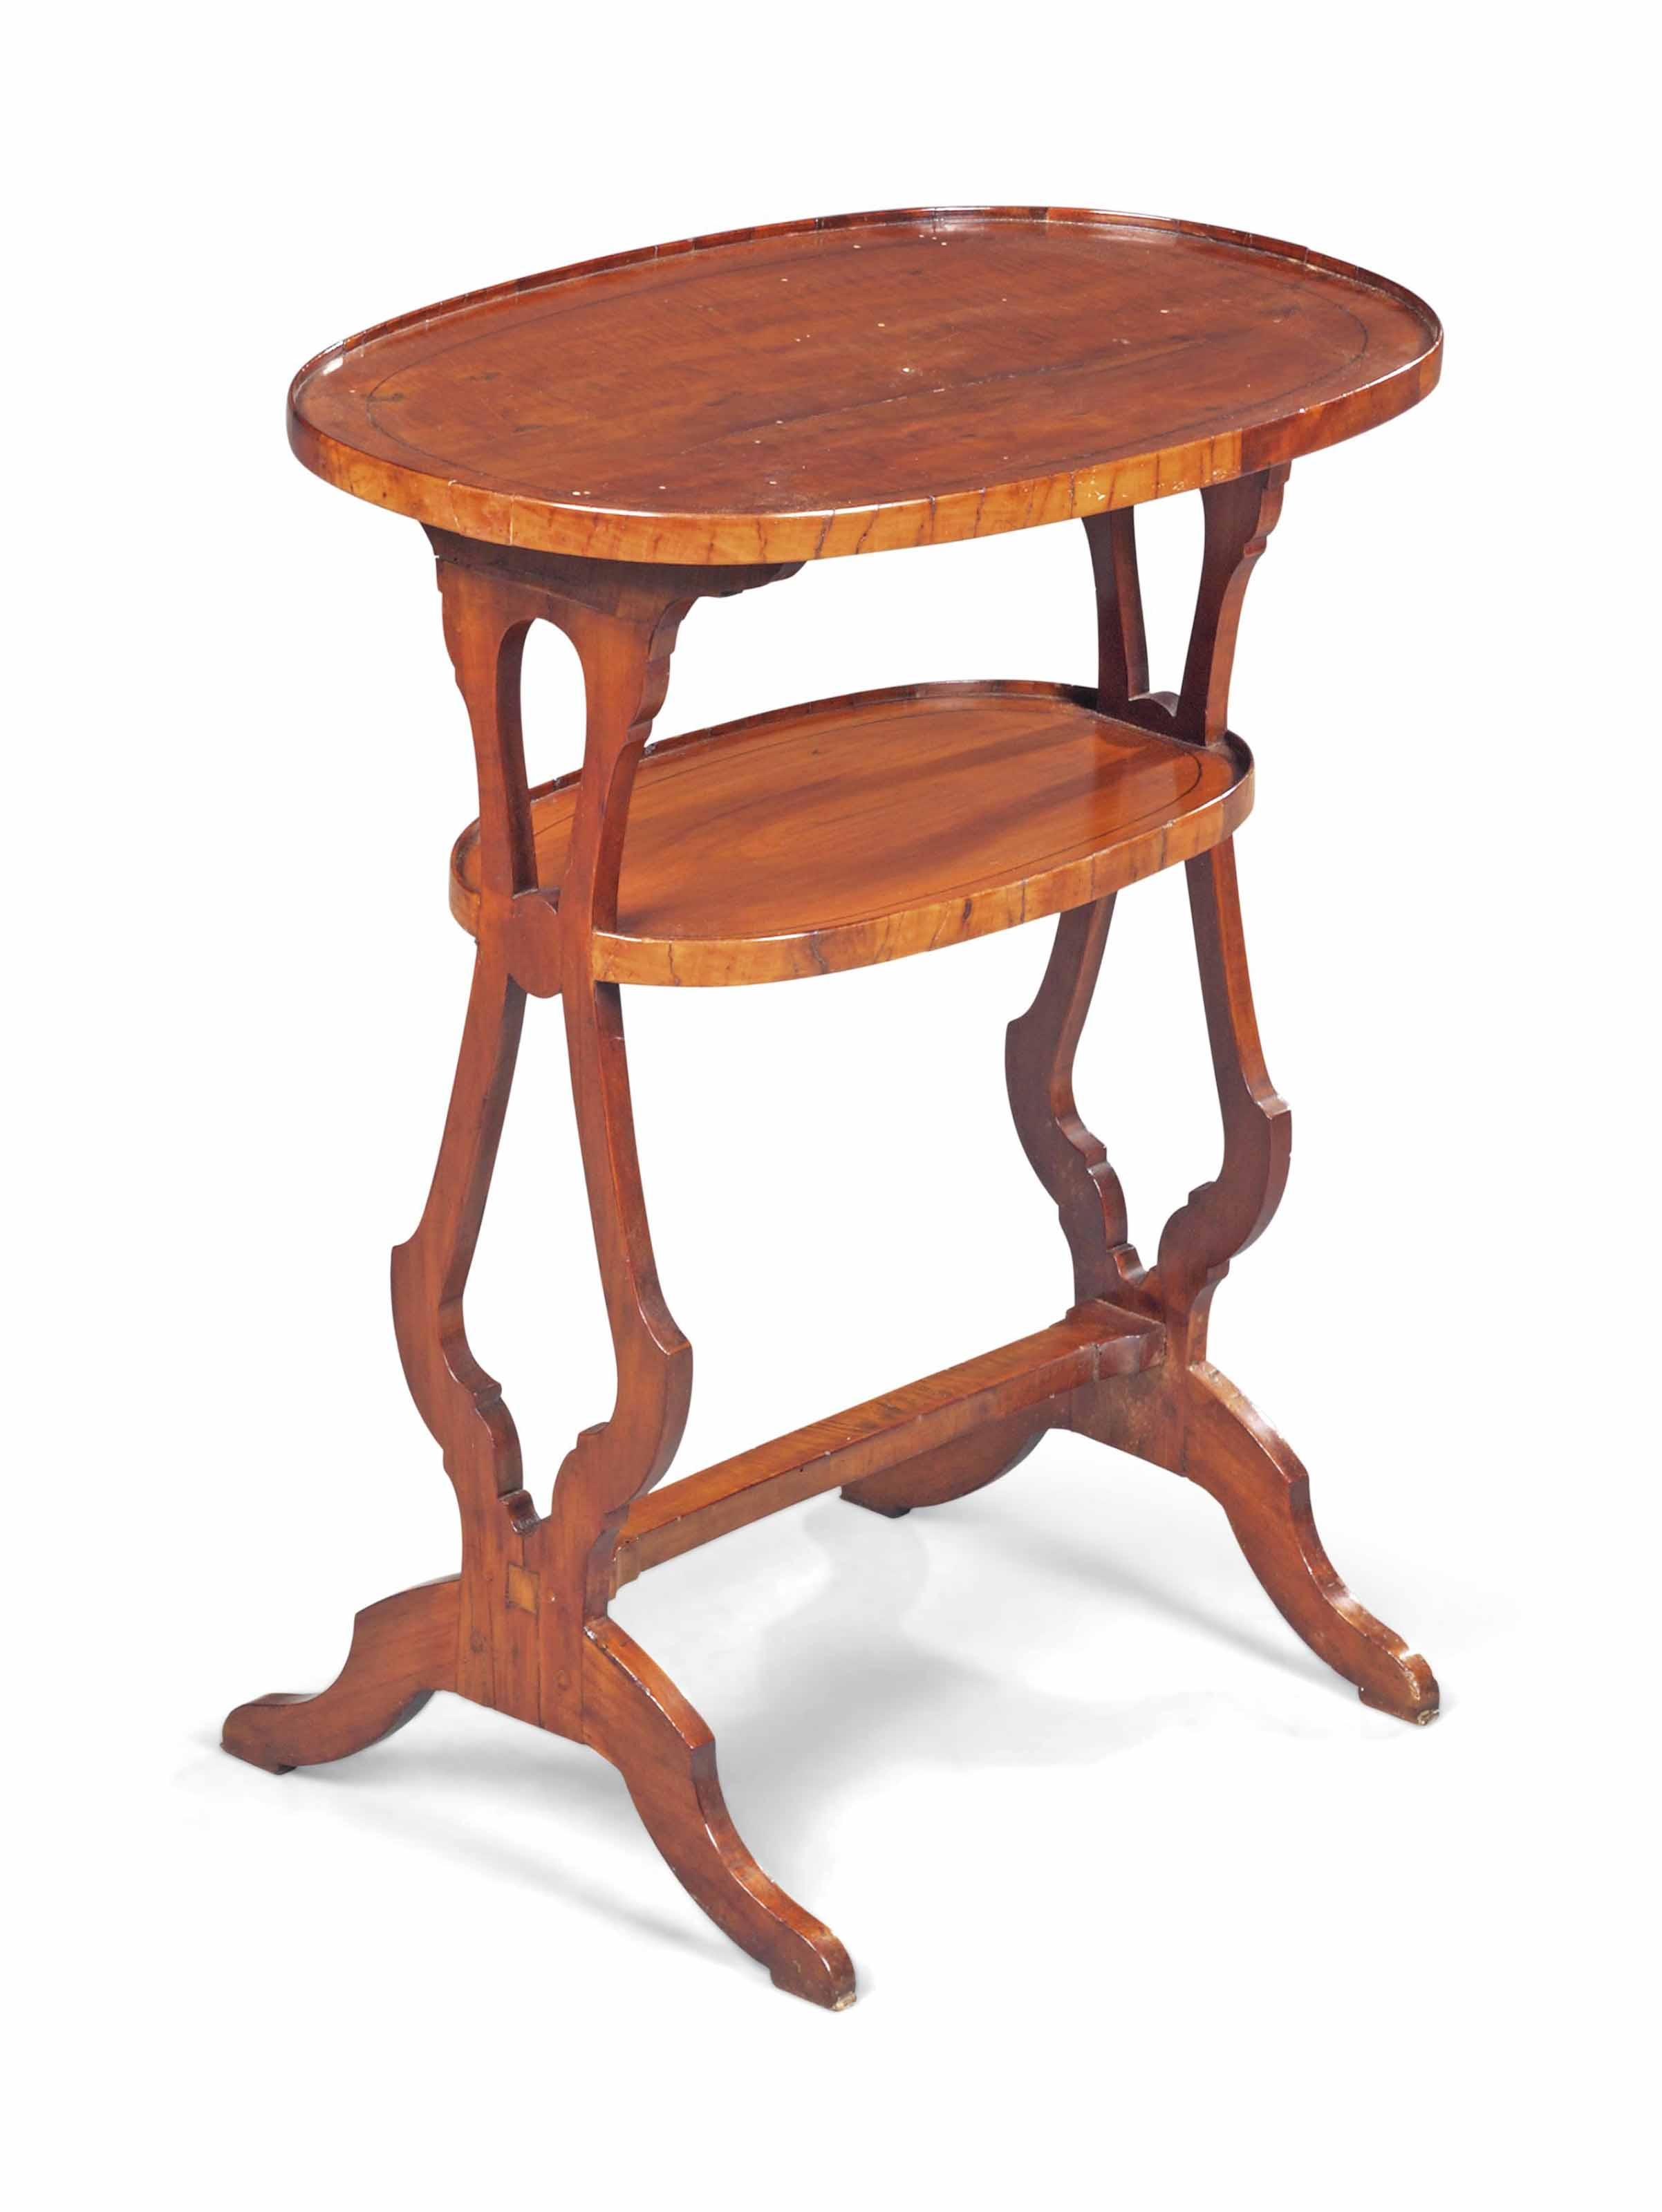 A FRUITWOOD OCCASIONAL TABLE